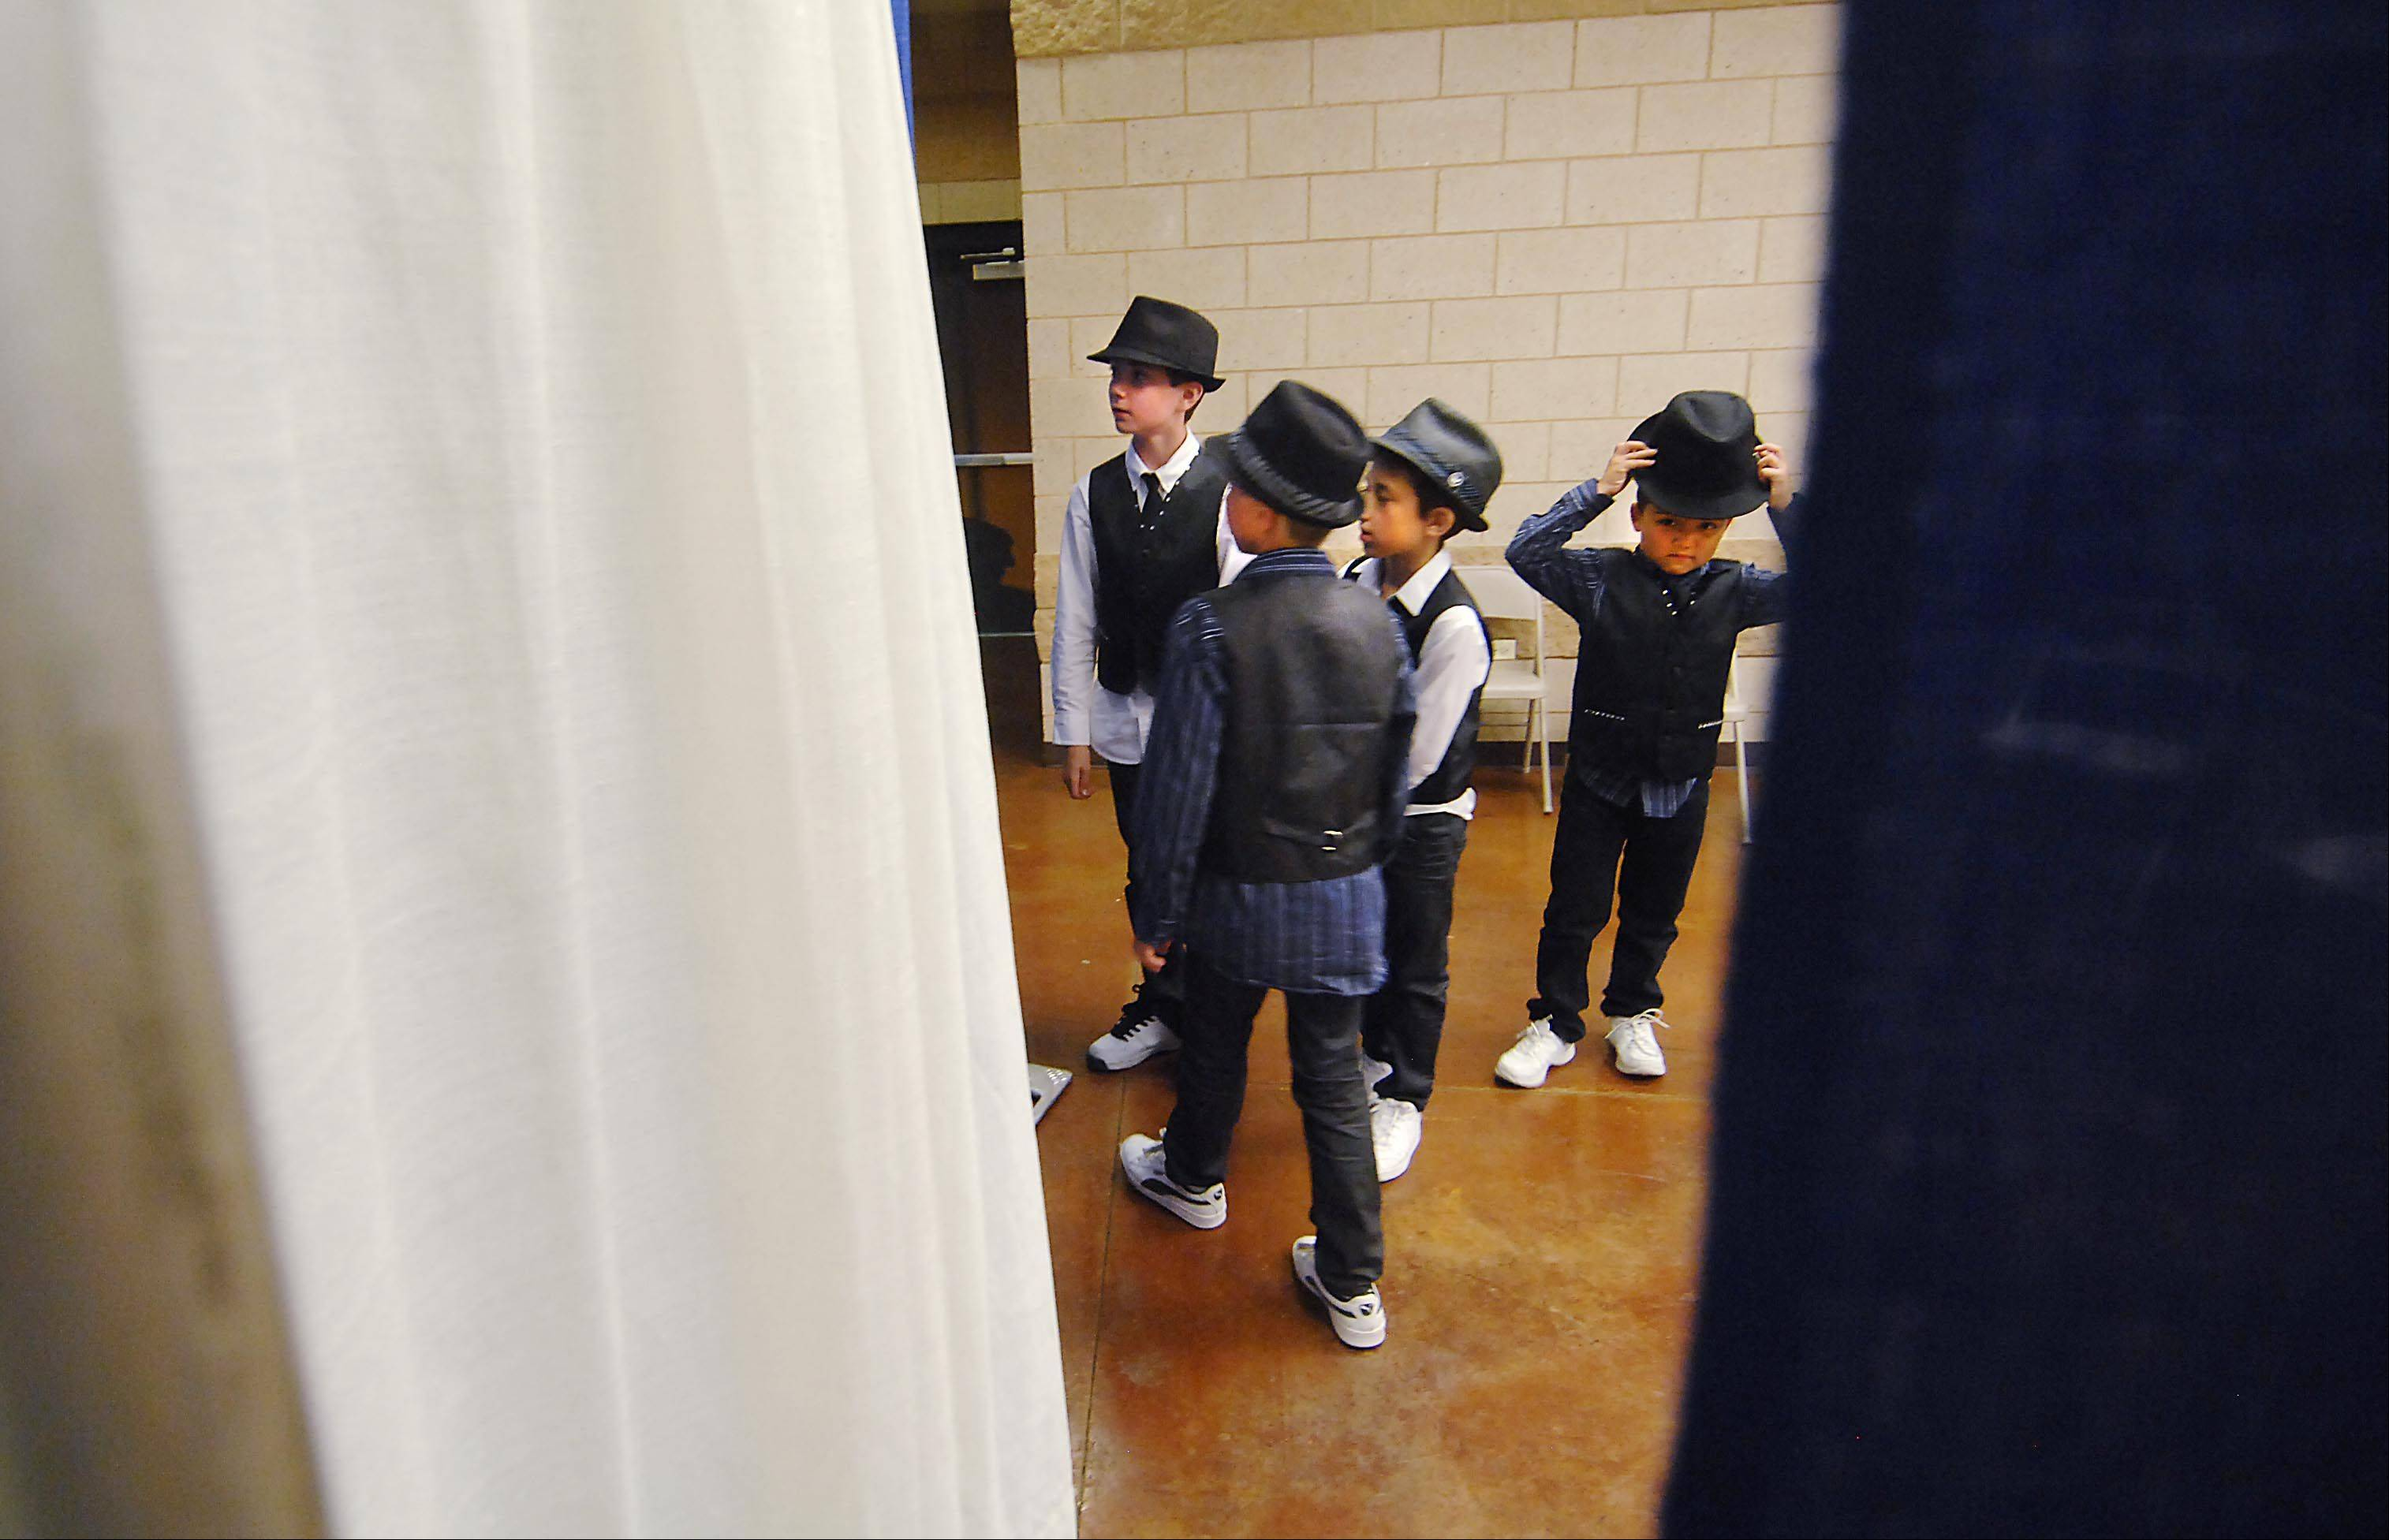 "Ethan Reimer, Dominic Campobasso, and Ian Berk watch the stage as Isaac Serna adjusts his hat while they wait backstage just before their turn Monday night at the 29th Annual Kane County Fair Talent Contest in the Prairie Events Center at the fairgrounds in St. Charles. The Aurora pre-teen group performed a Hip Hop Dance called ""Bounce""."